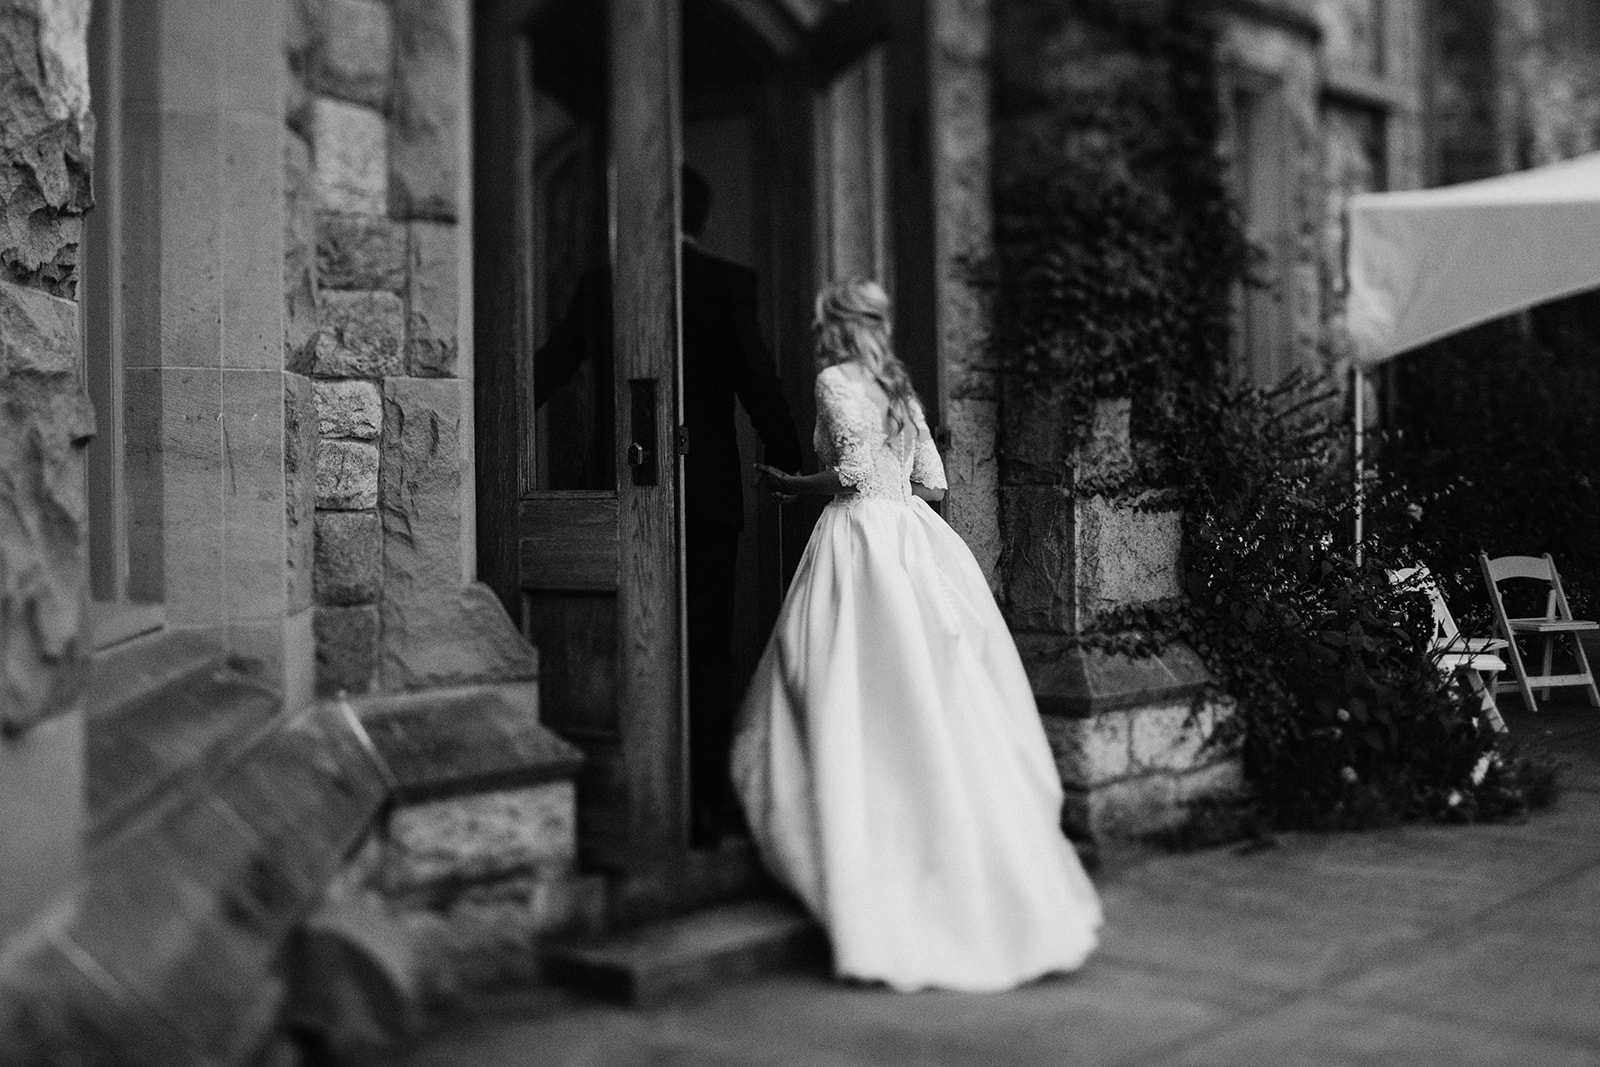 Hatley Castle Wedding - Victoria Wedding Photographer Kim Jay-56.jpg